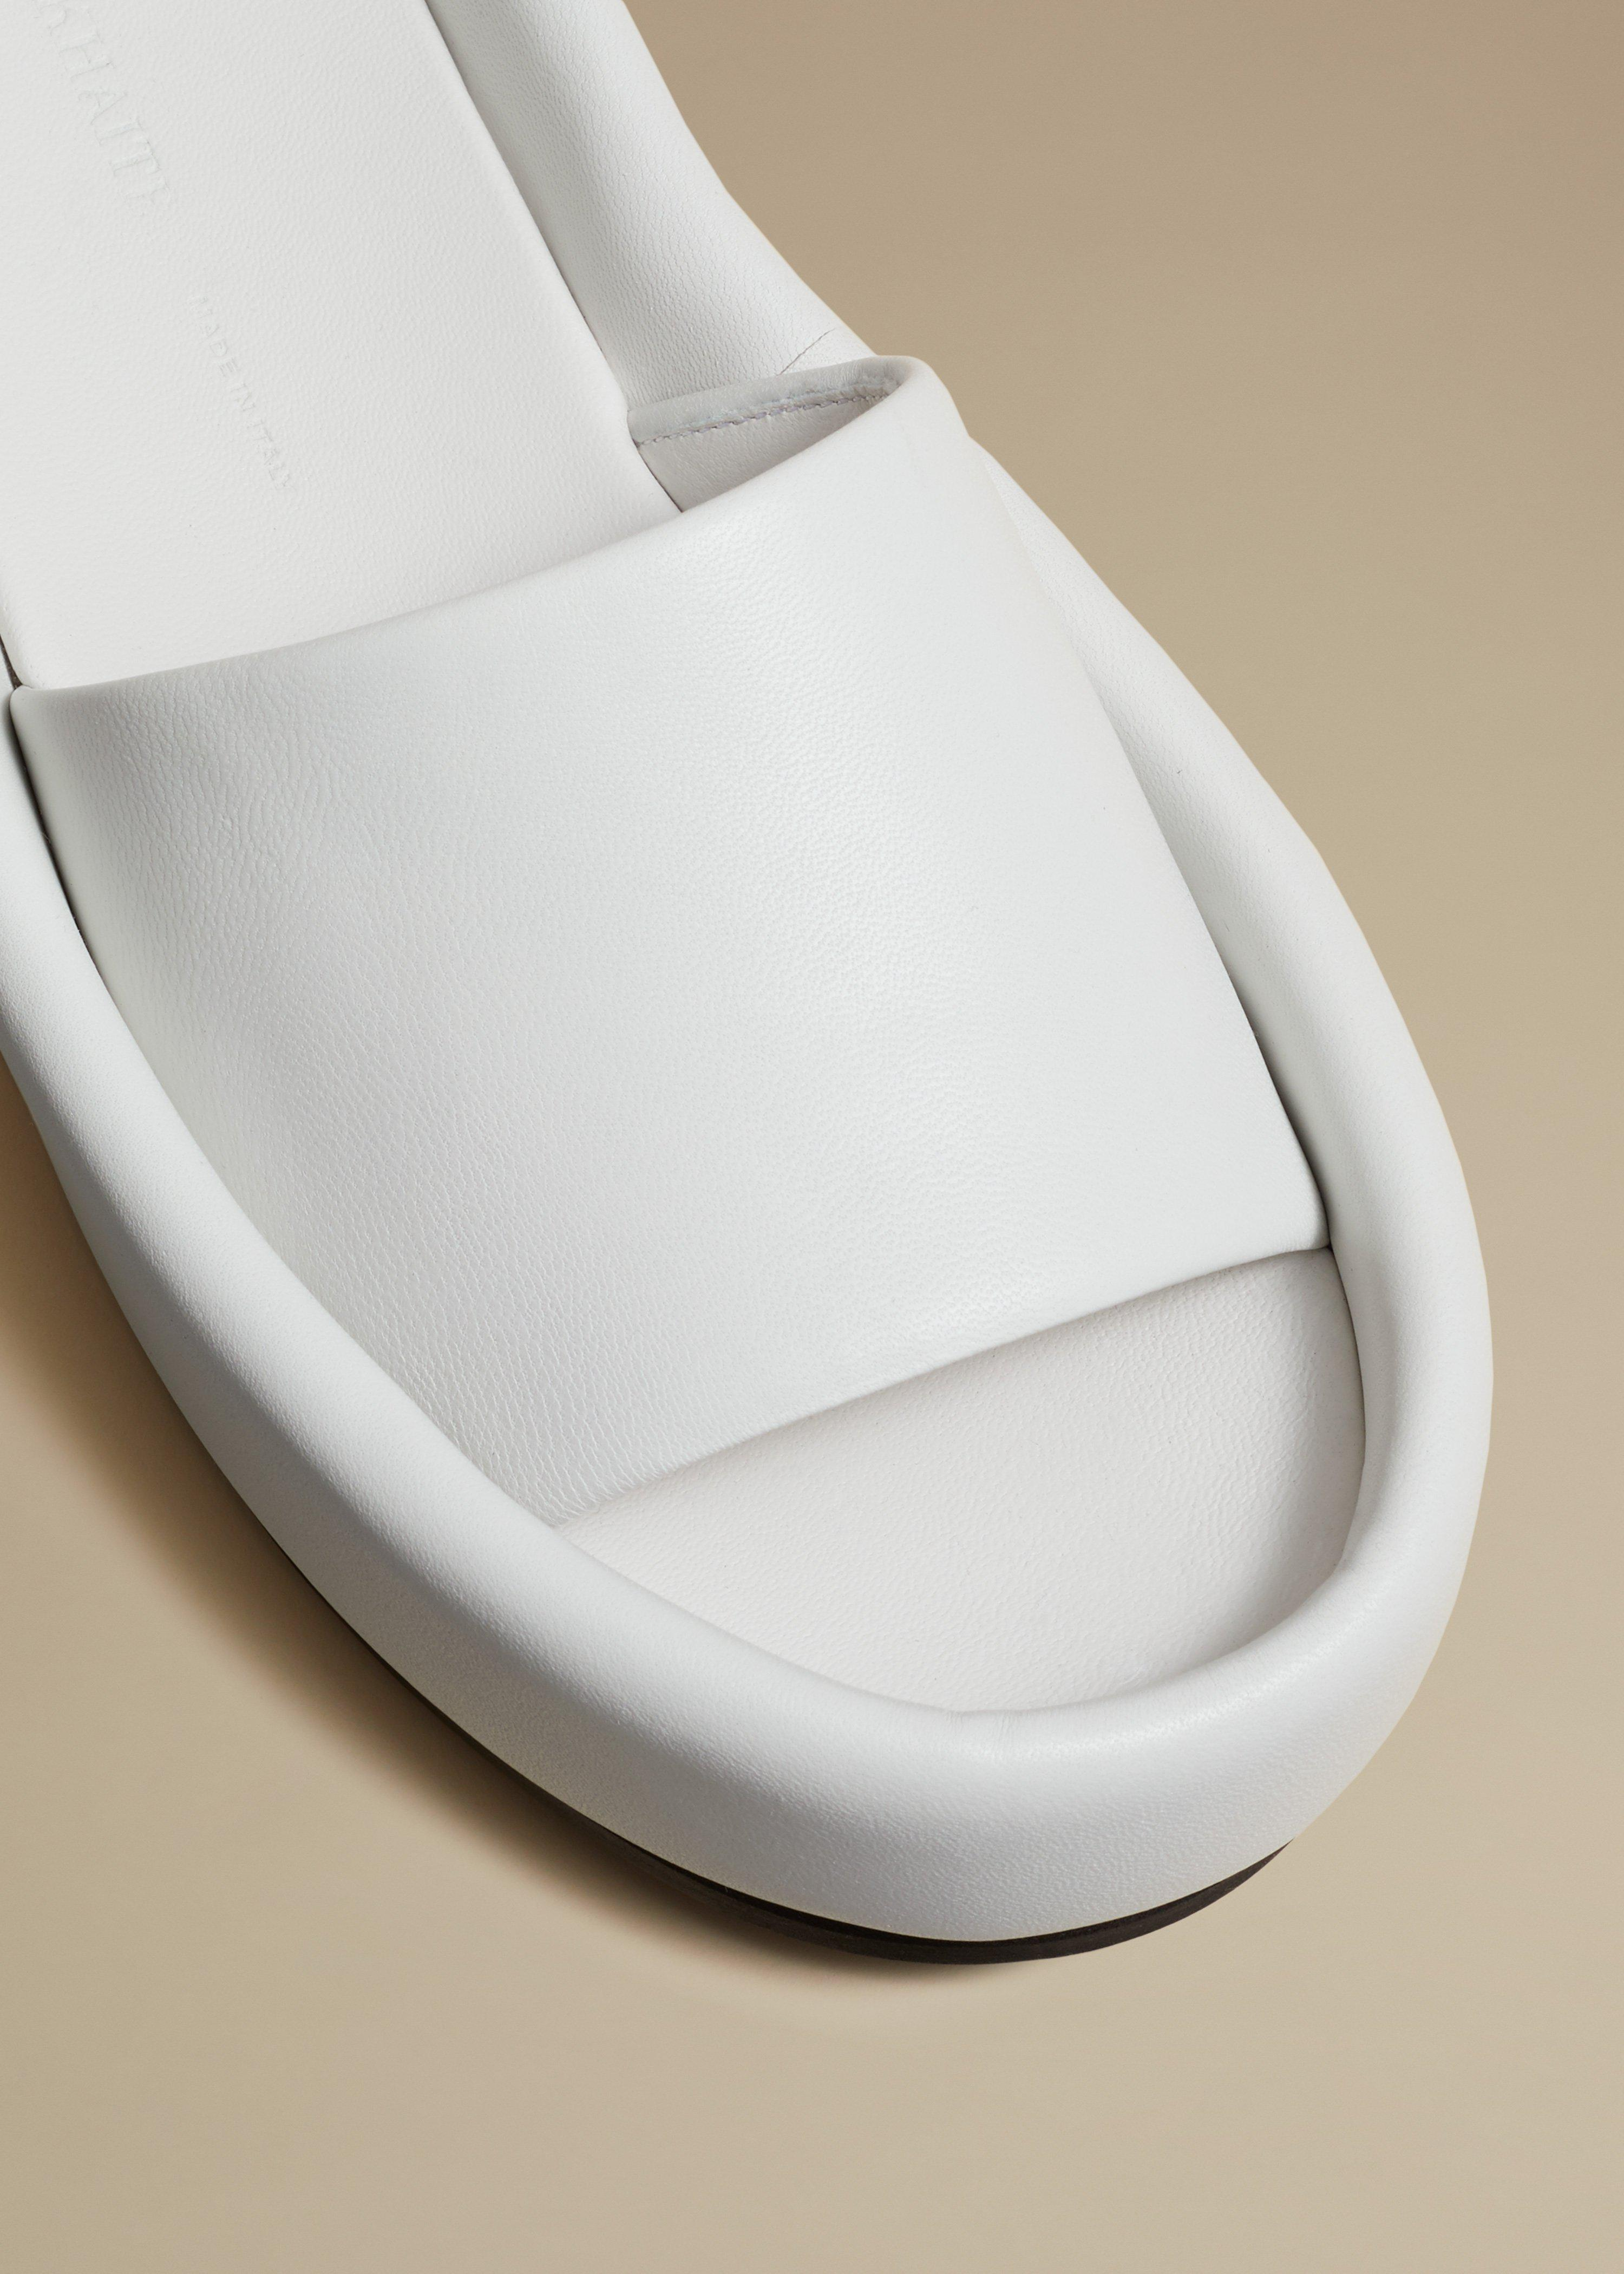 The Venice Sandal in White Leather 2